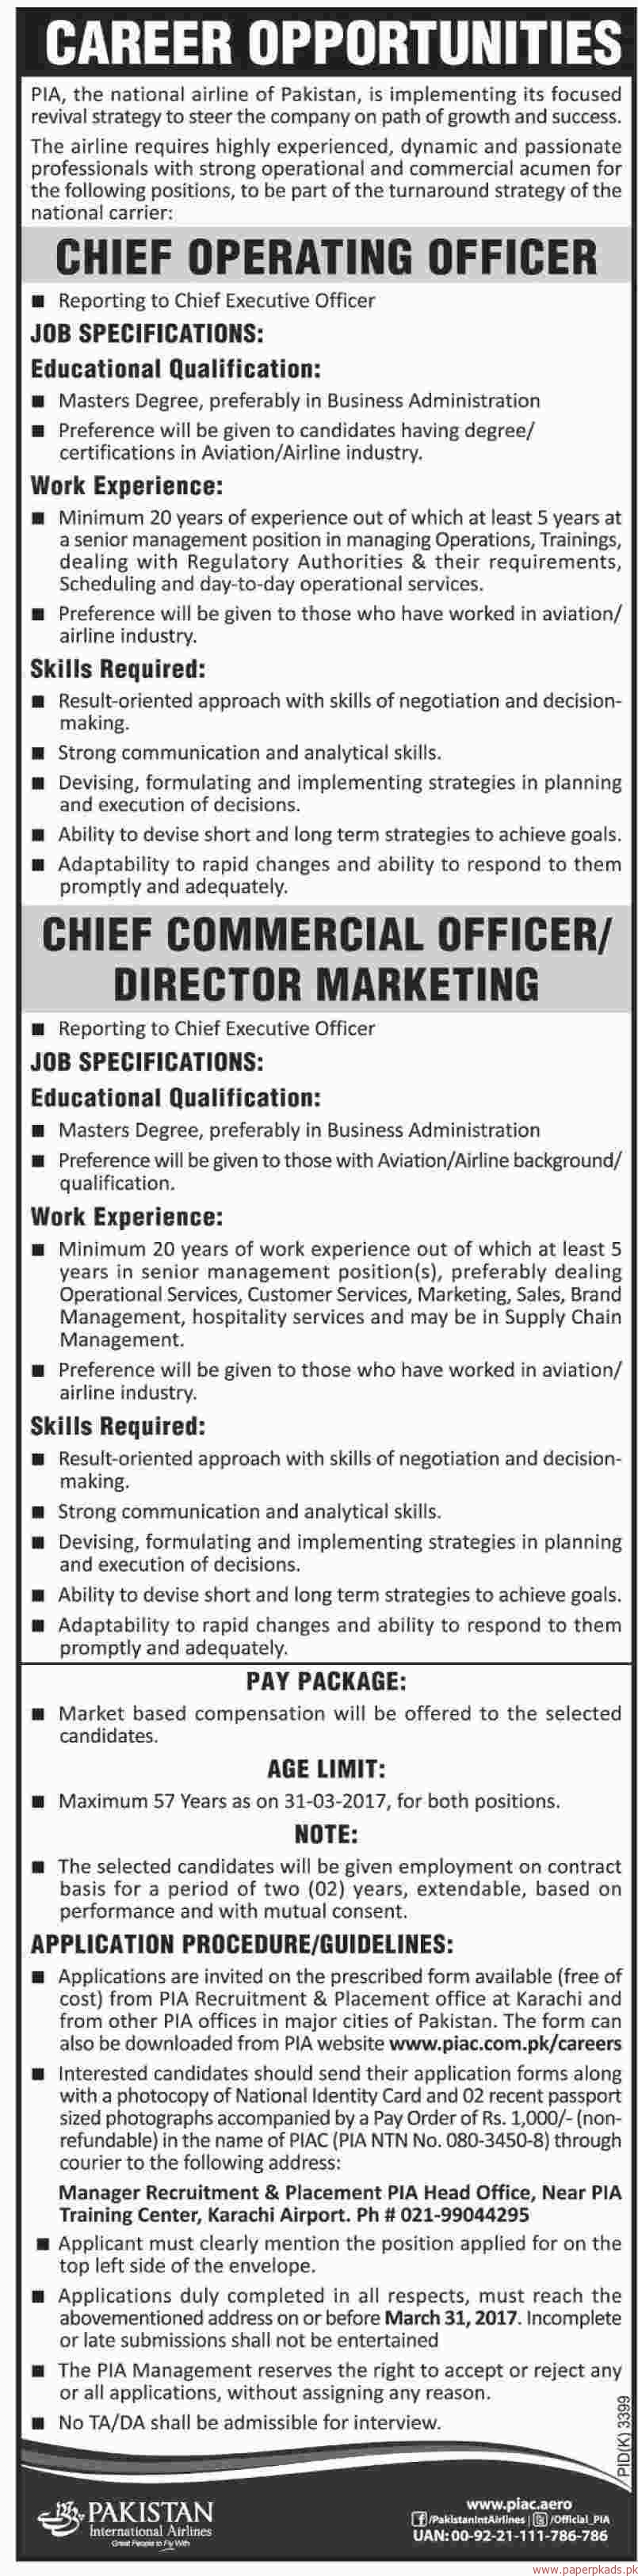 jobs in pia international airlines dawn jobs ads 15 jobs in pia international airlines dawn jobs ads 15 2017